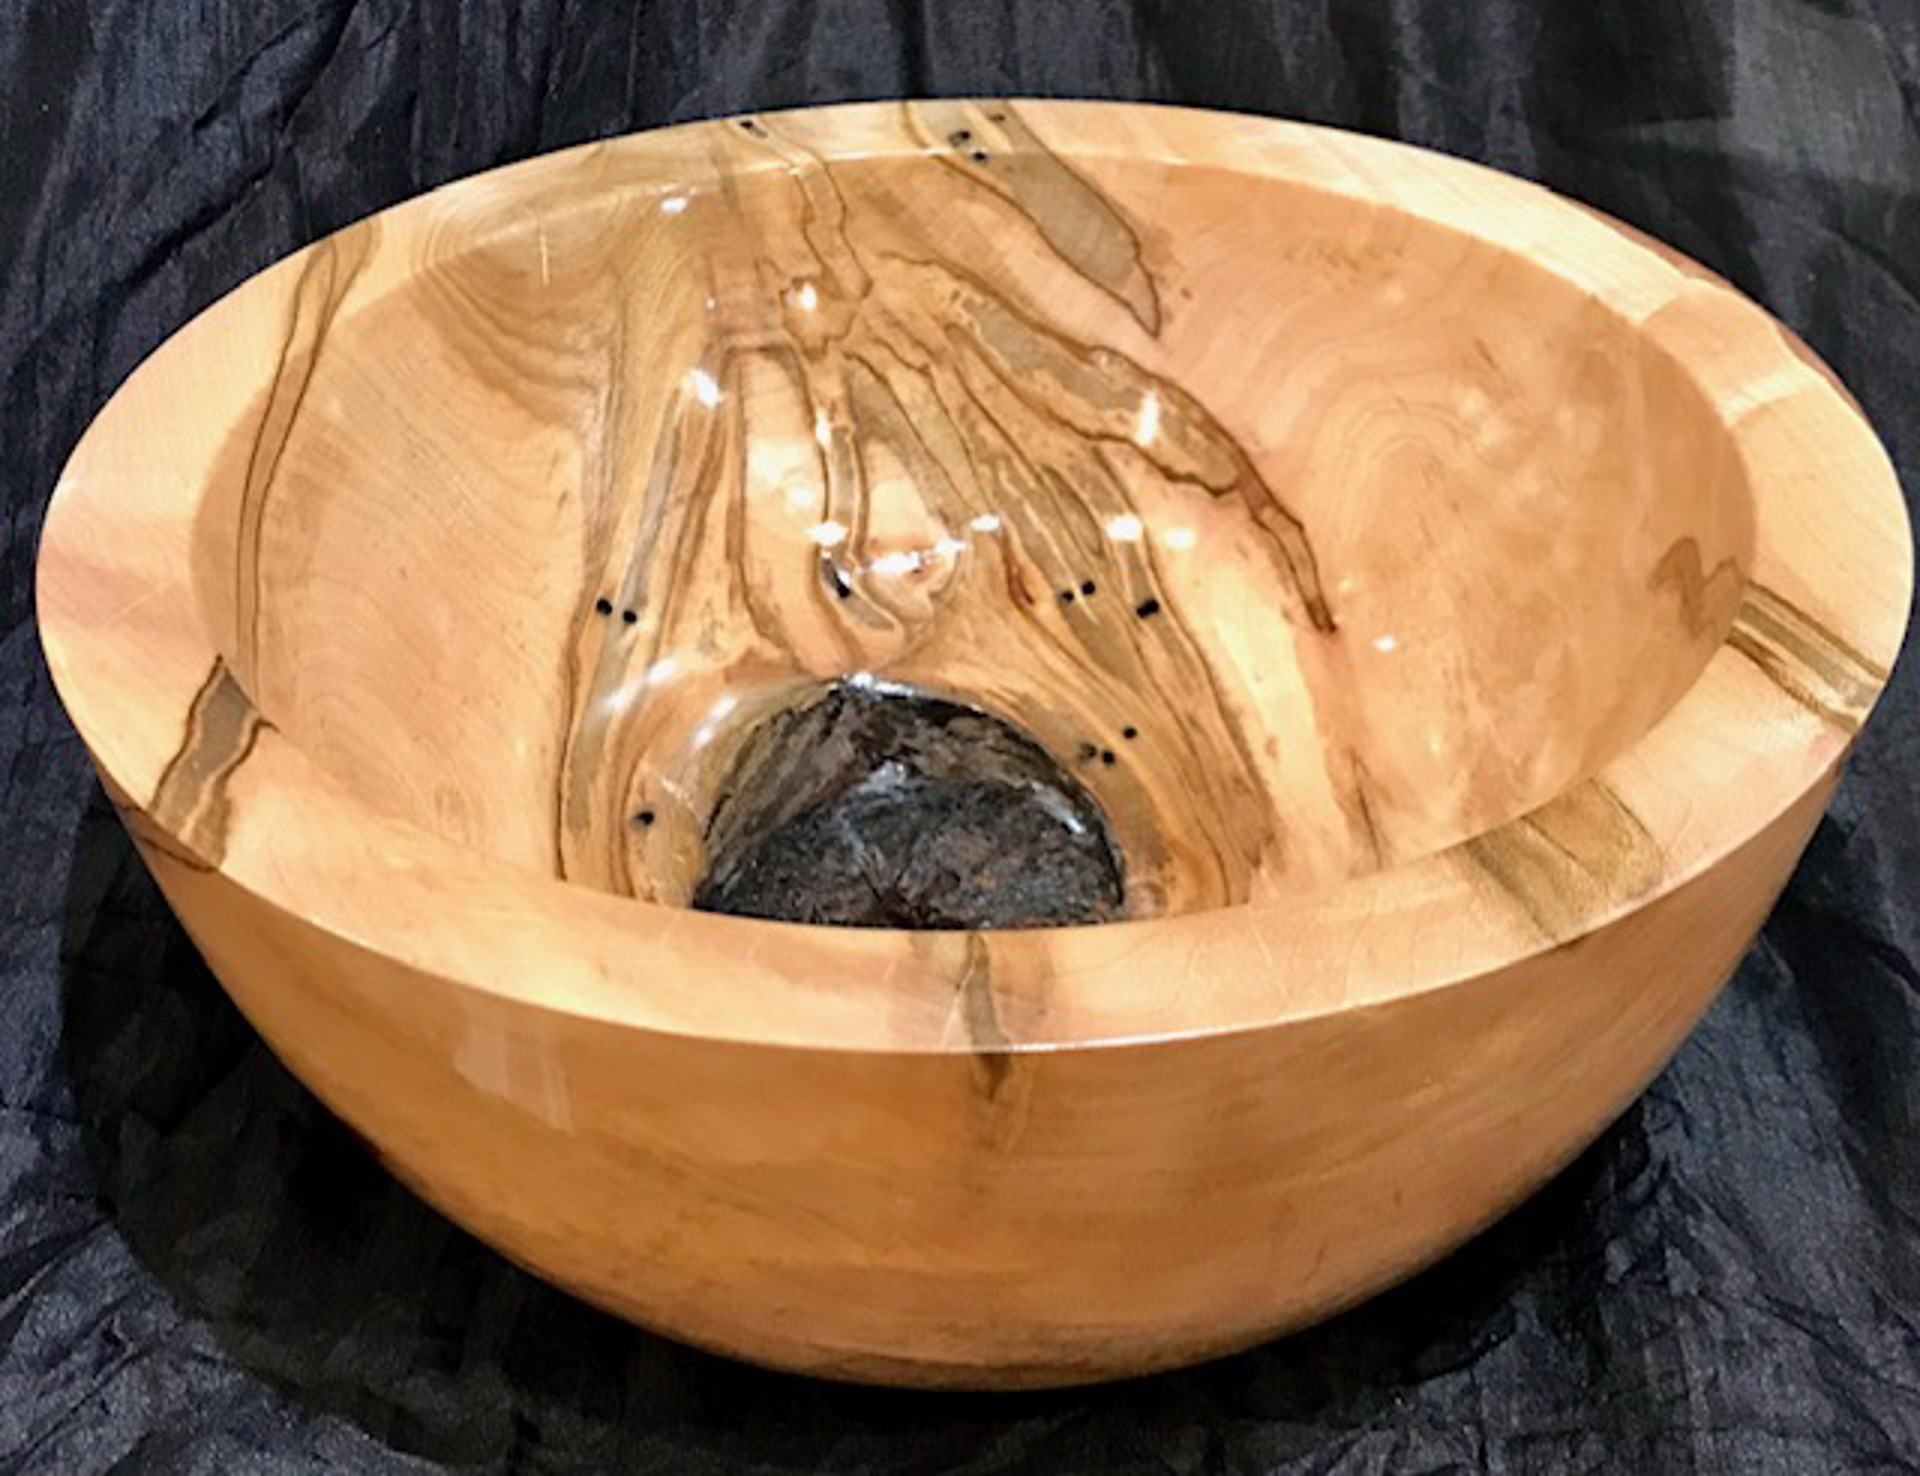 Ambrosia Maple Knot Bowl by Brian Higgins